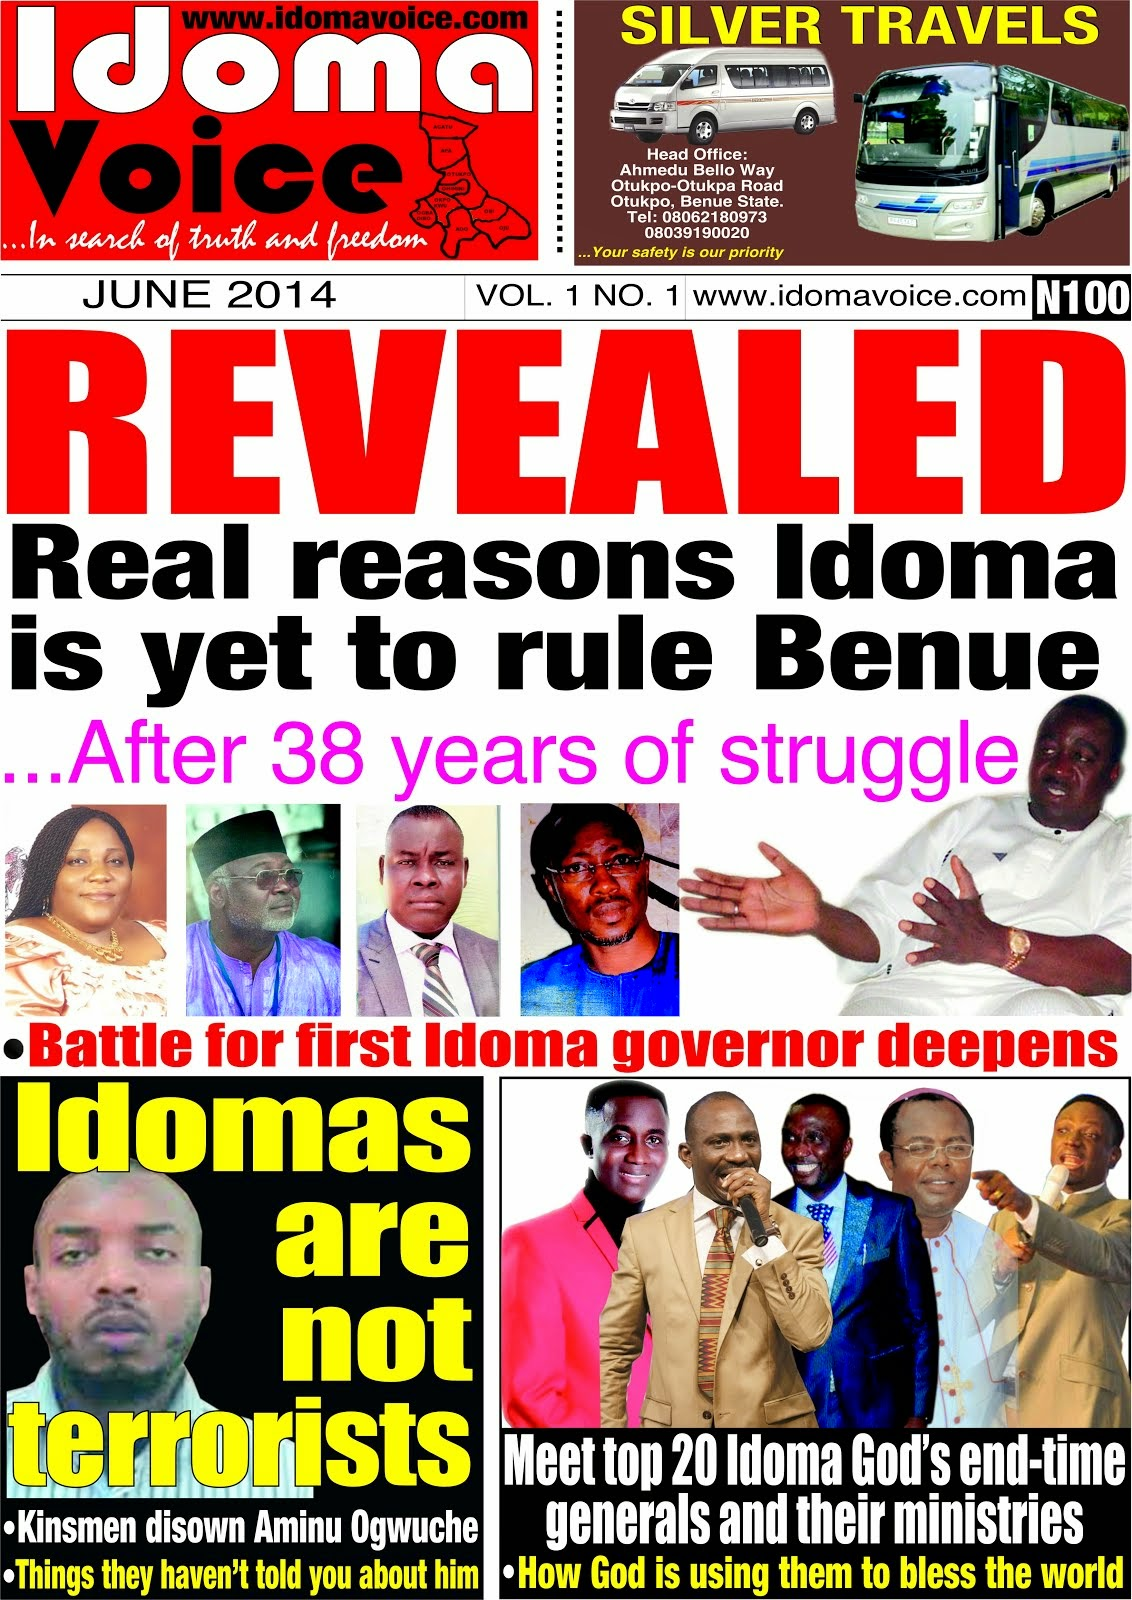 IDOMA VOICE NEWSPAPER DEBUTS